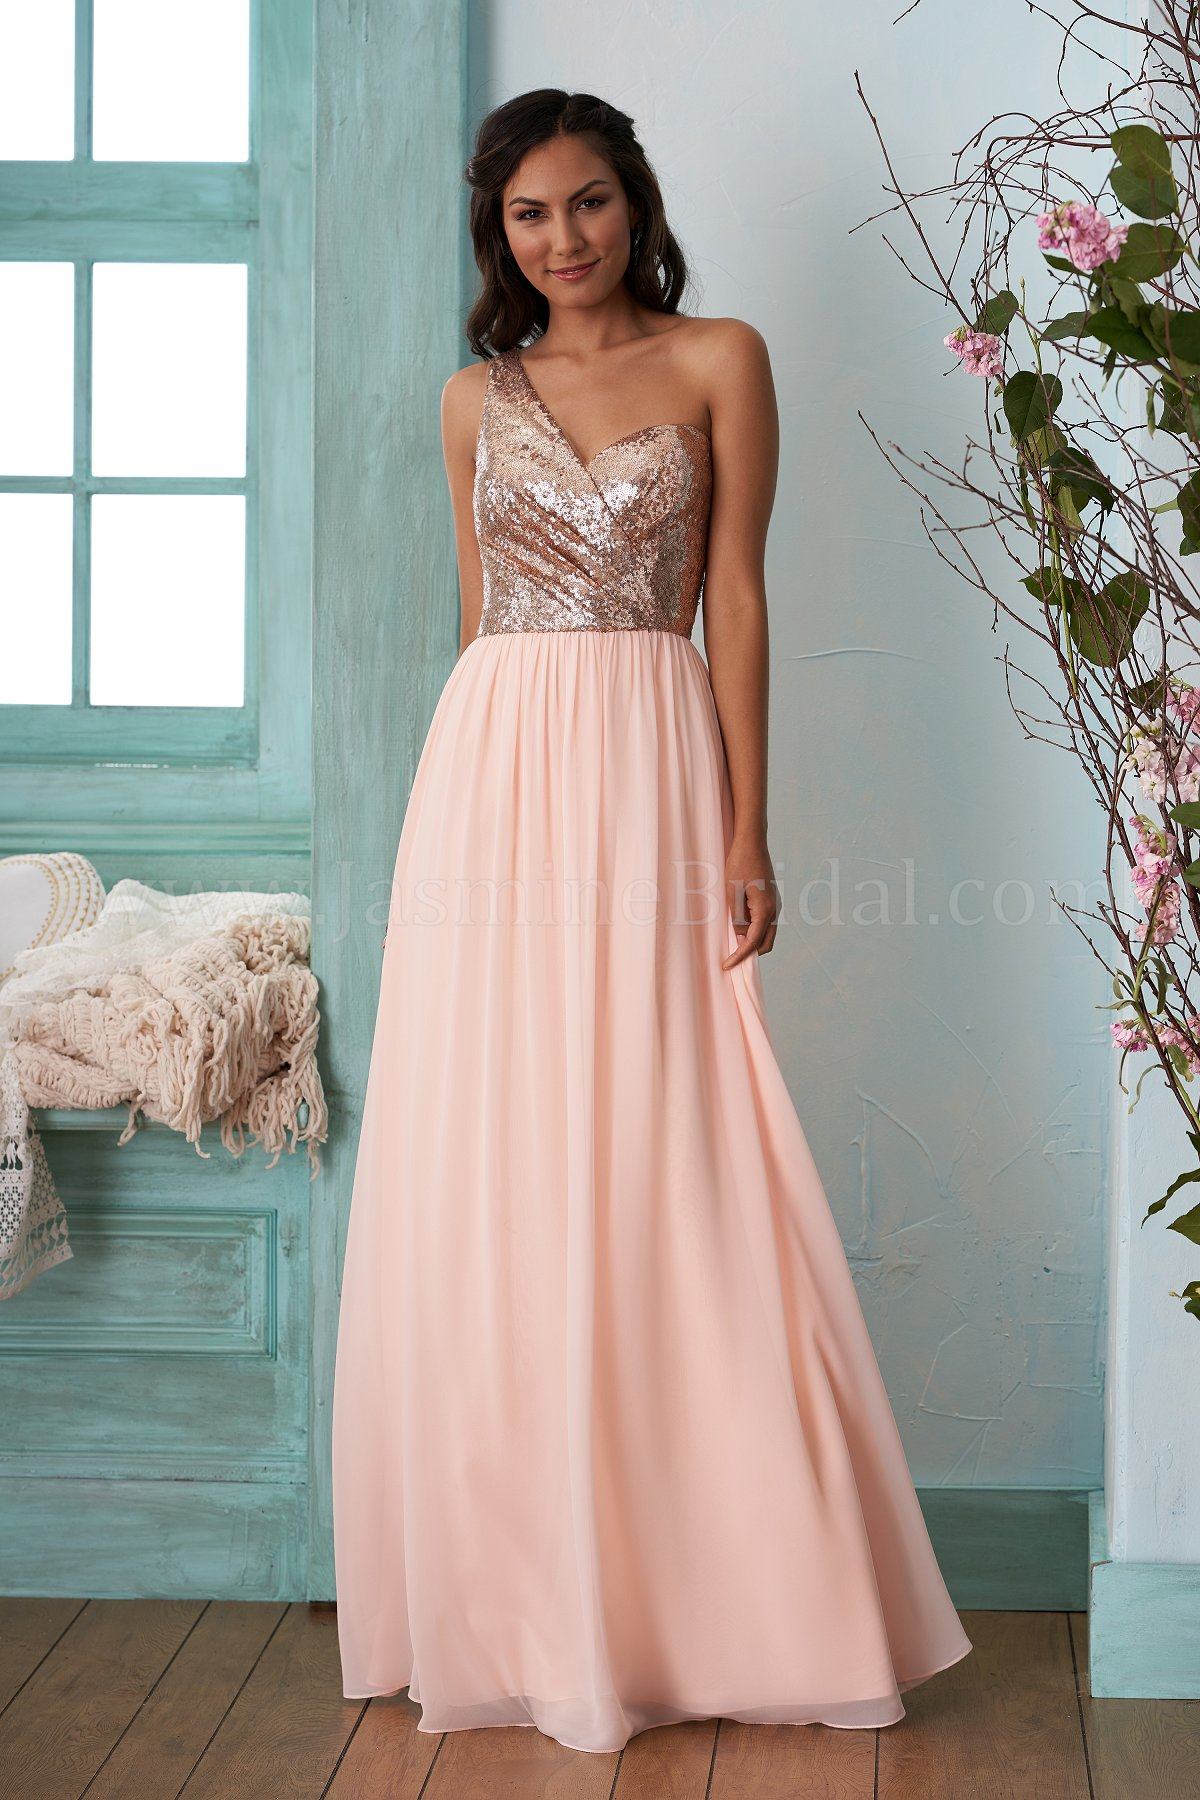 Gold Bridesmaid Dresses-The right color theme